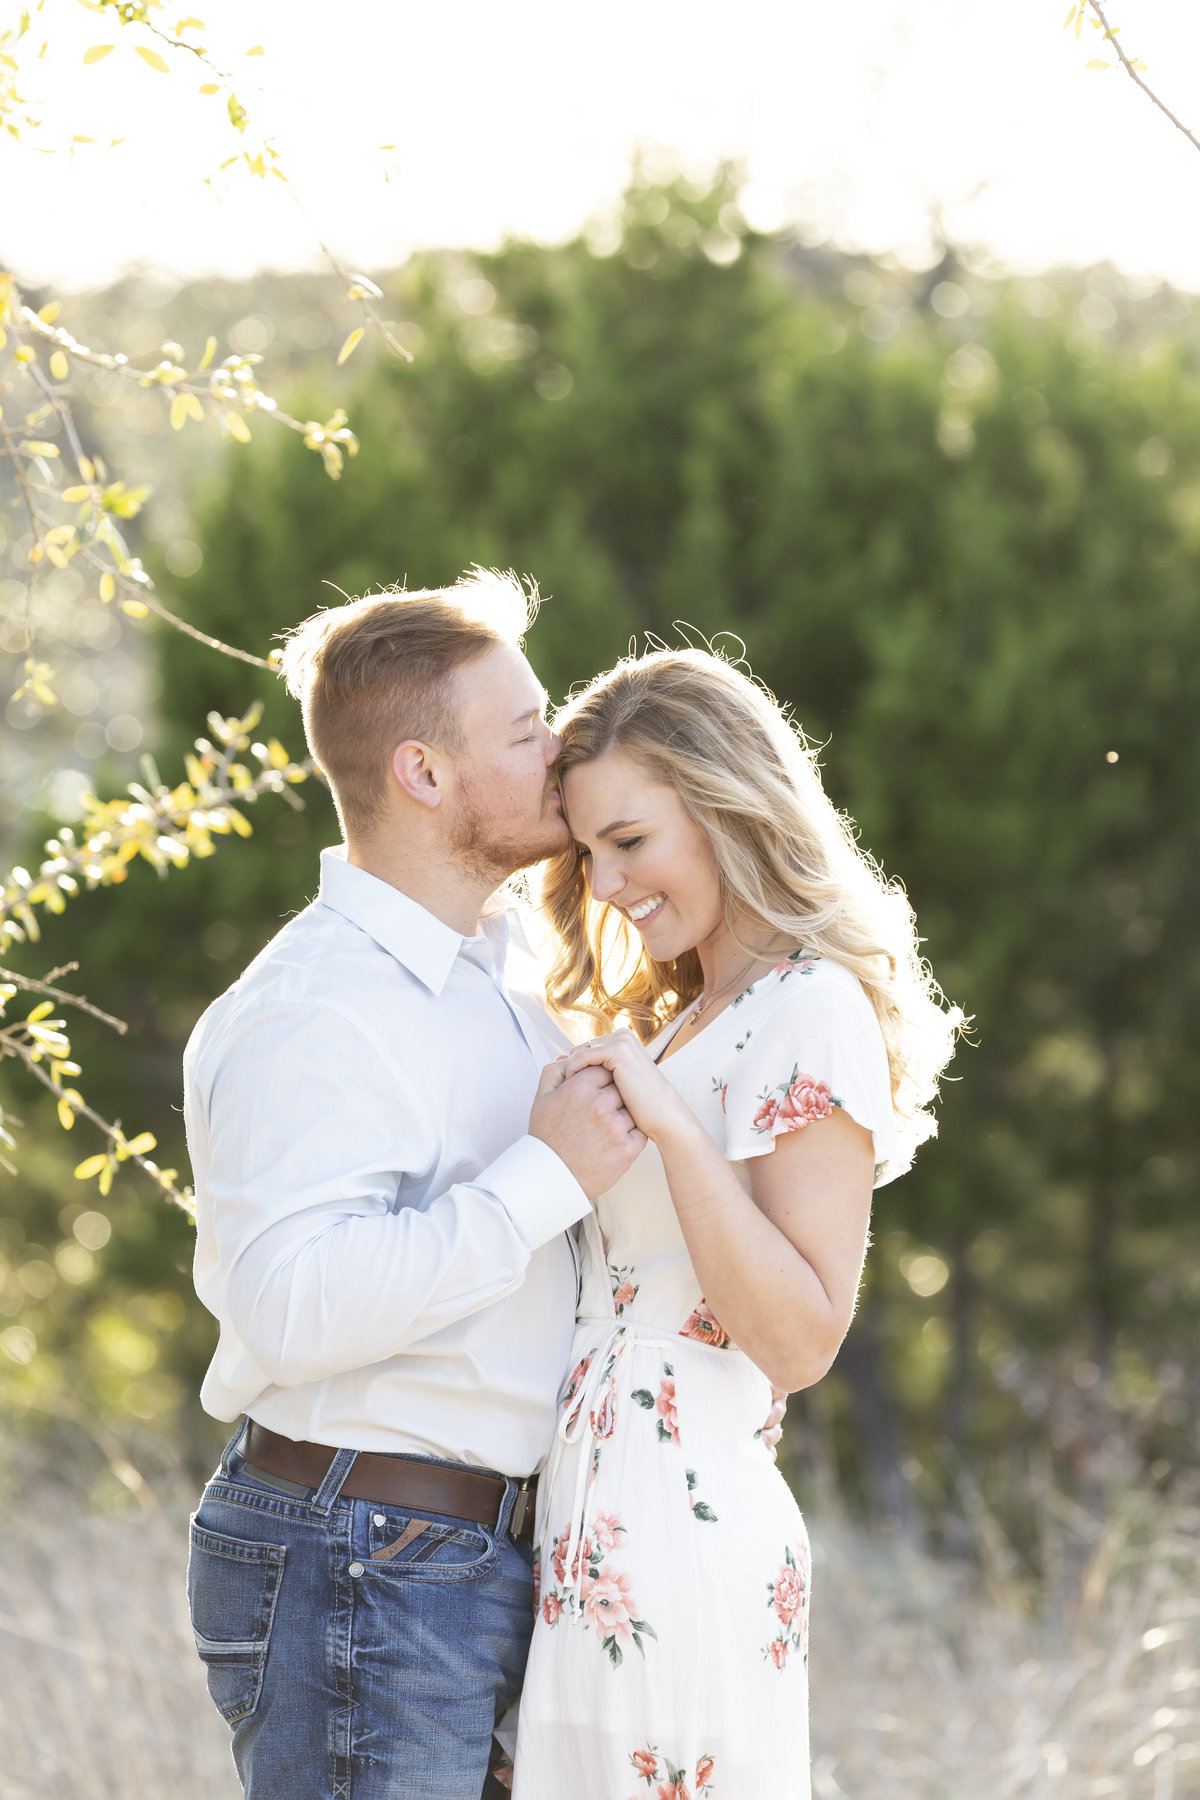 Randi Michelle Photography_Stephanie Kunkle_ Engagement Session_Dallas-35